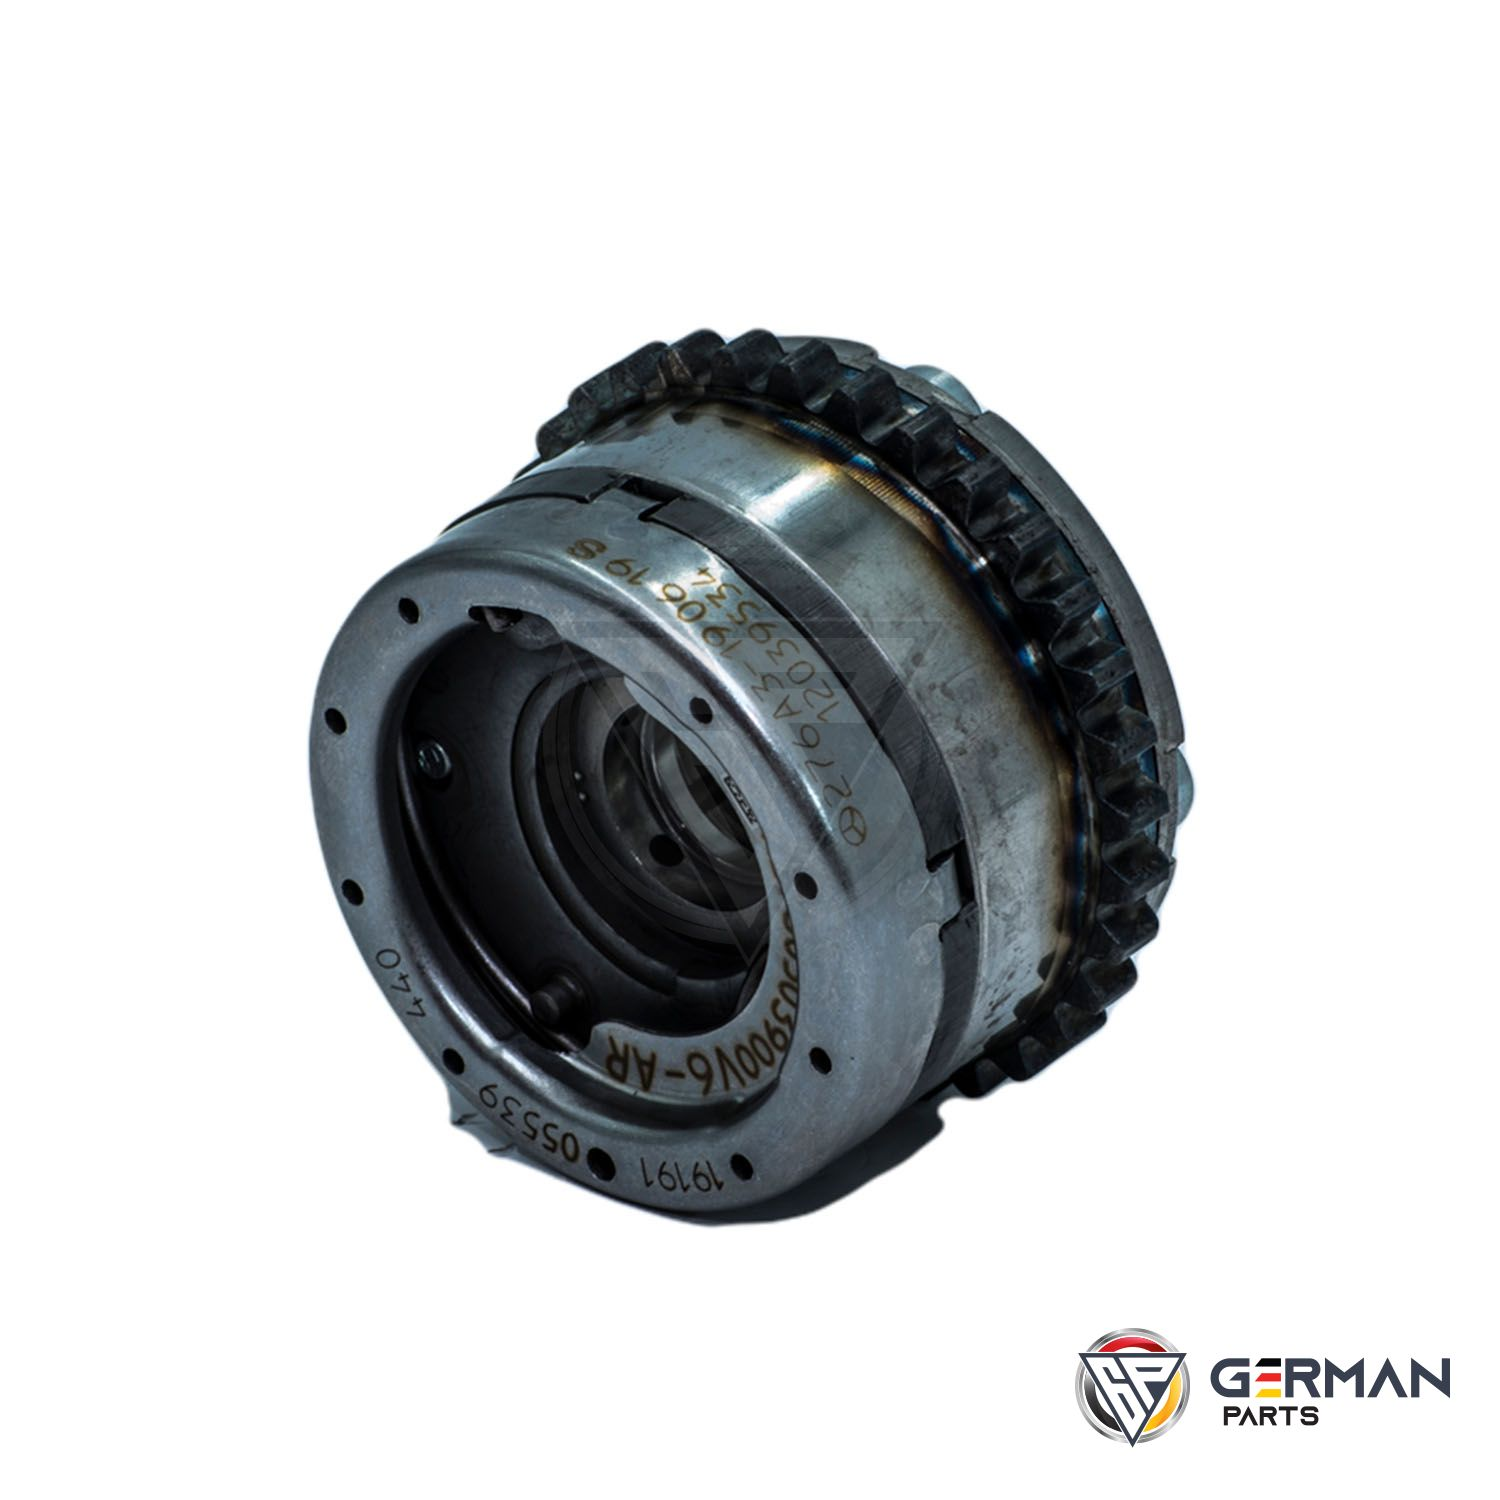 Buy Mercedes Benz Camshaft Adjuster Right Exhaust 2760503900 - German Parts